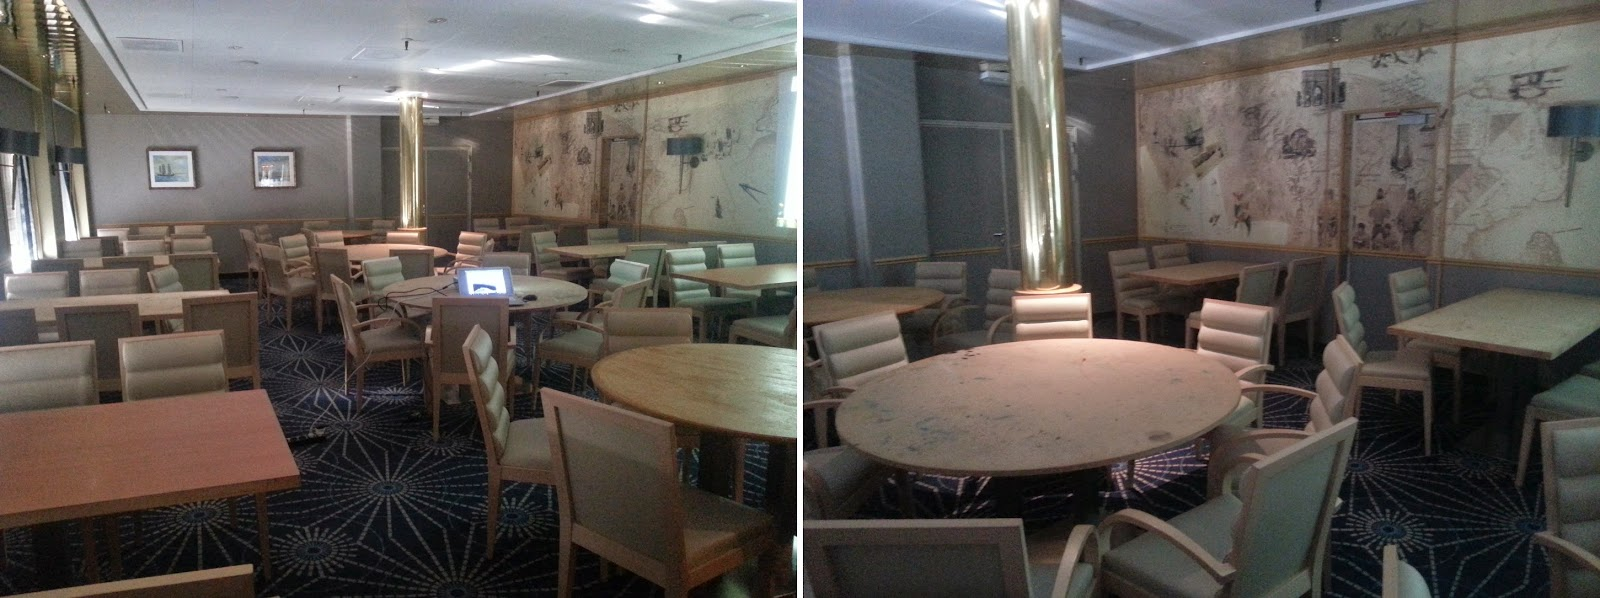 On Board Voyages of Discovery's Cruise Ship MV Voyager - Dining Room